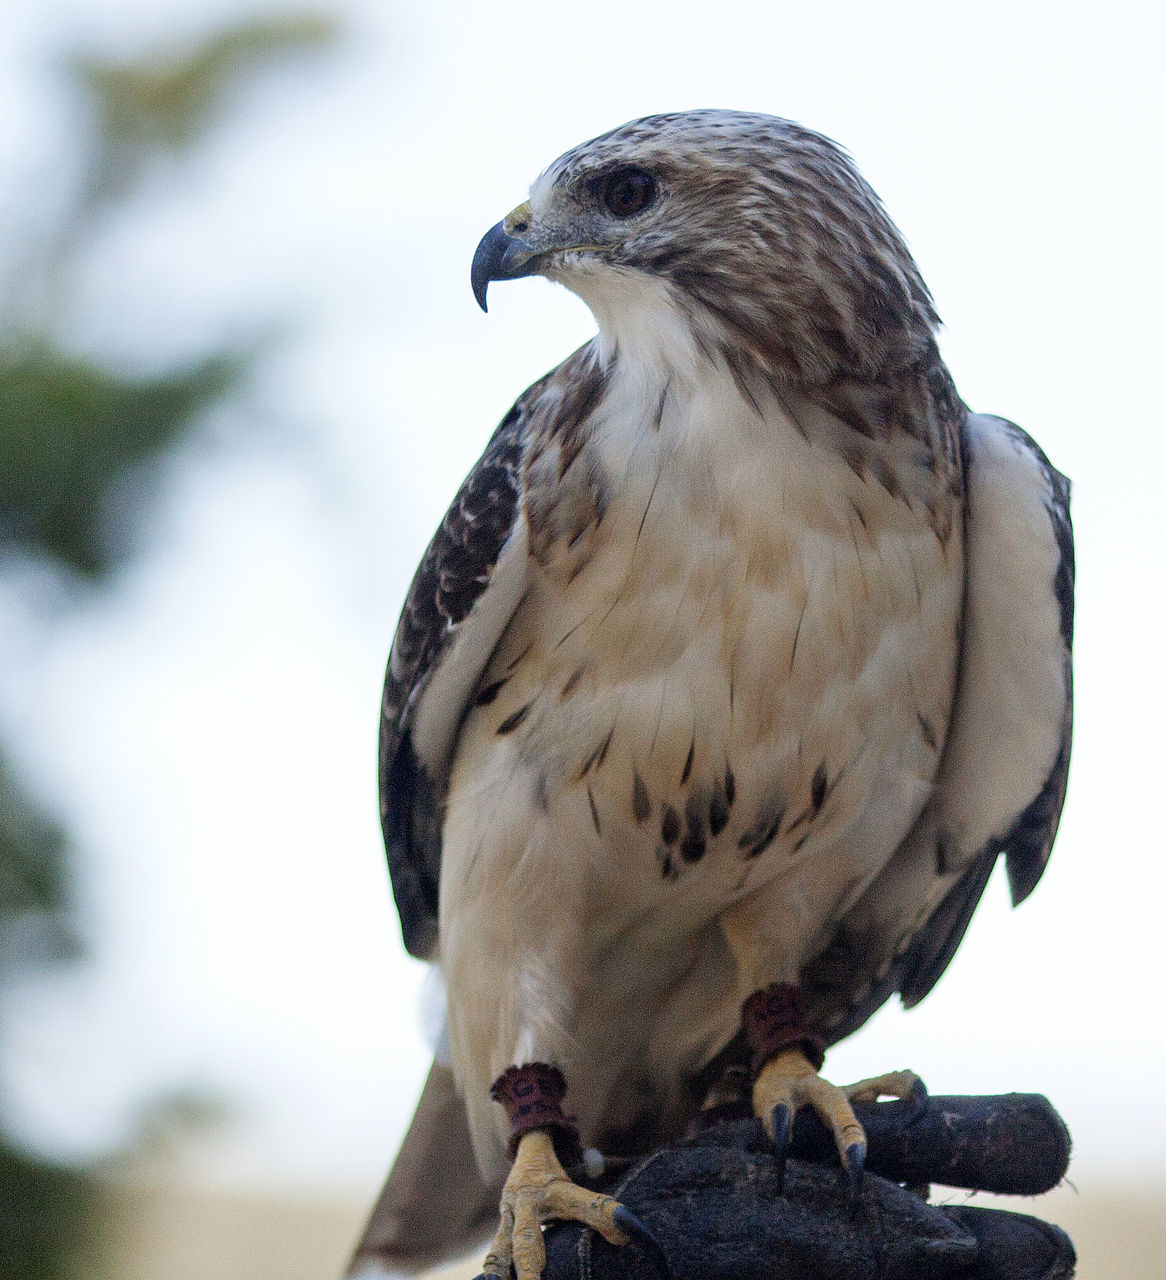 bird, animal themes, animal, one animal, animal wildlife, animals in the wild, vertebrate, perching, focus on foreground, close-up, day, bird of prey, nature, no people, looking, looking away, outdoors, full length, beak, eagle